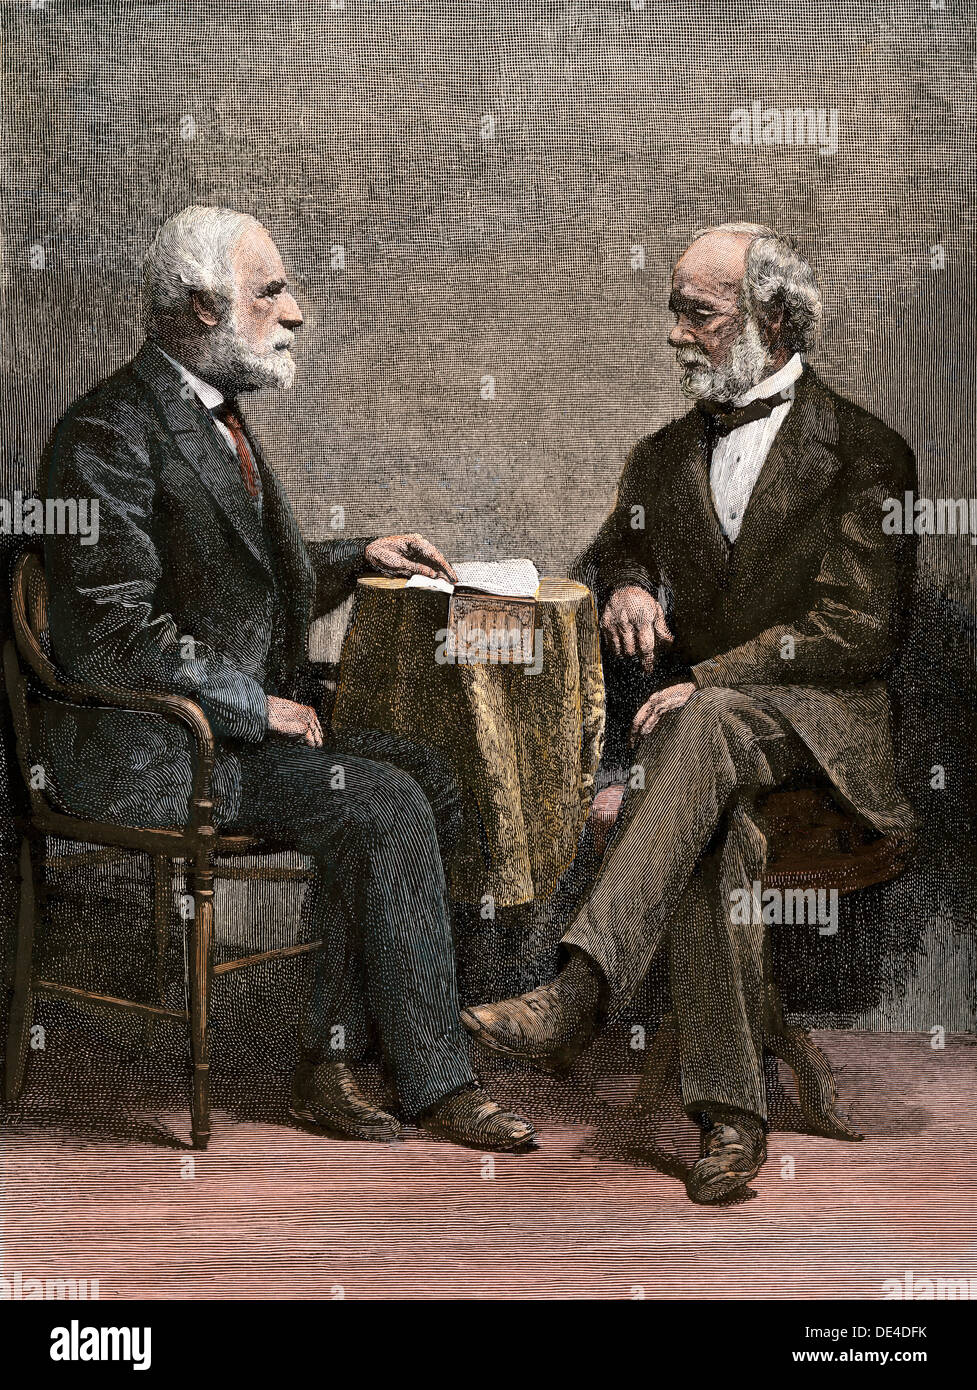 Confederate generals Robert E. Lee and Joseph E. Johnston, from a photograph taken after the war. Hand-colored woodcut - Stock Image